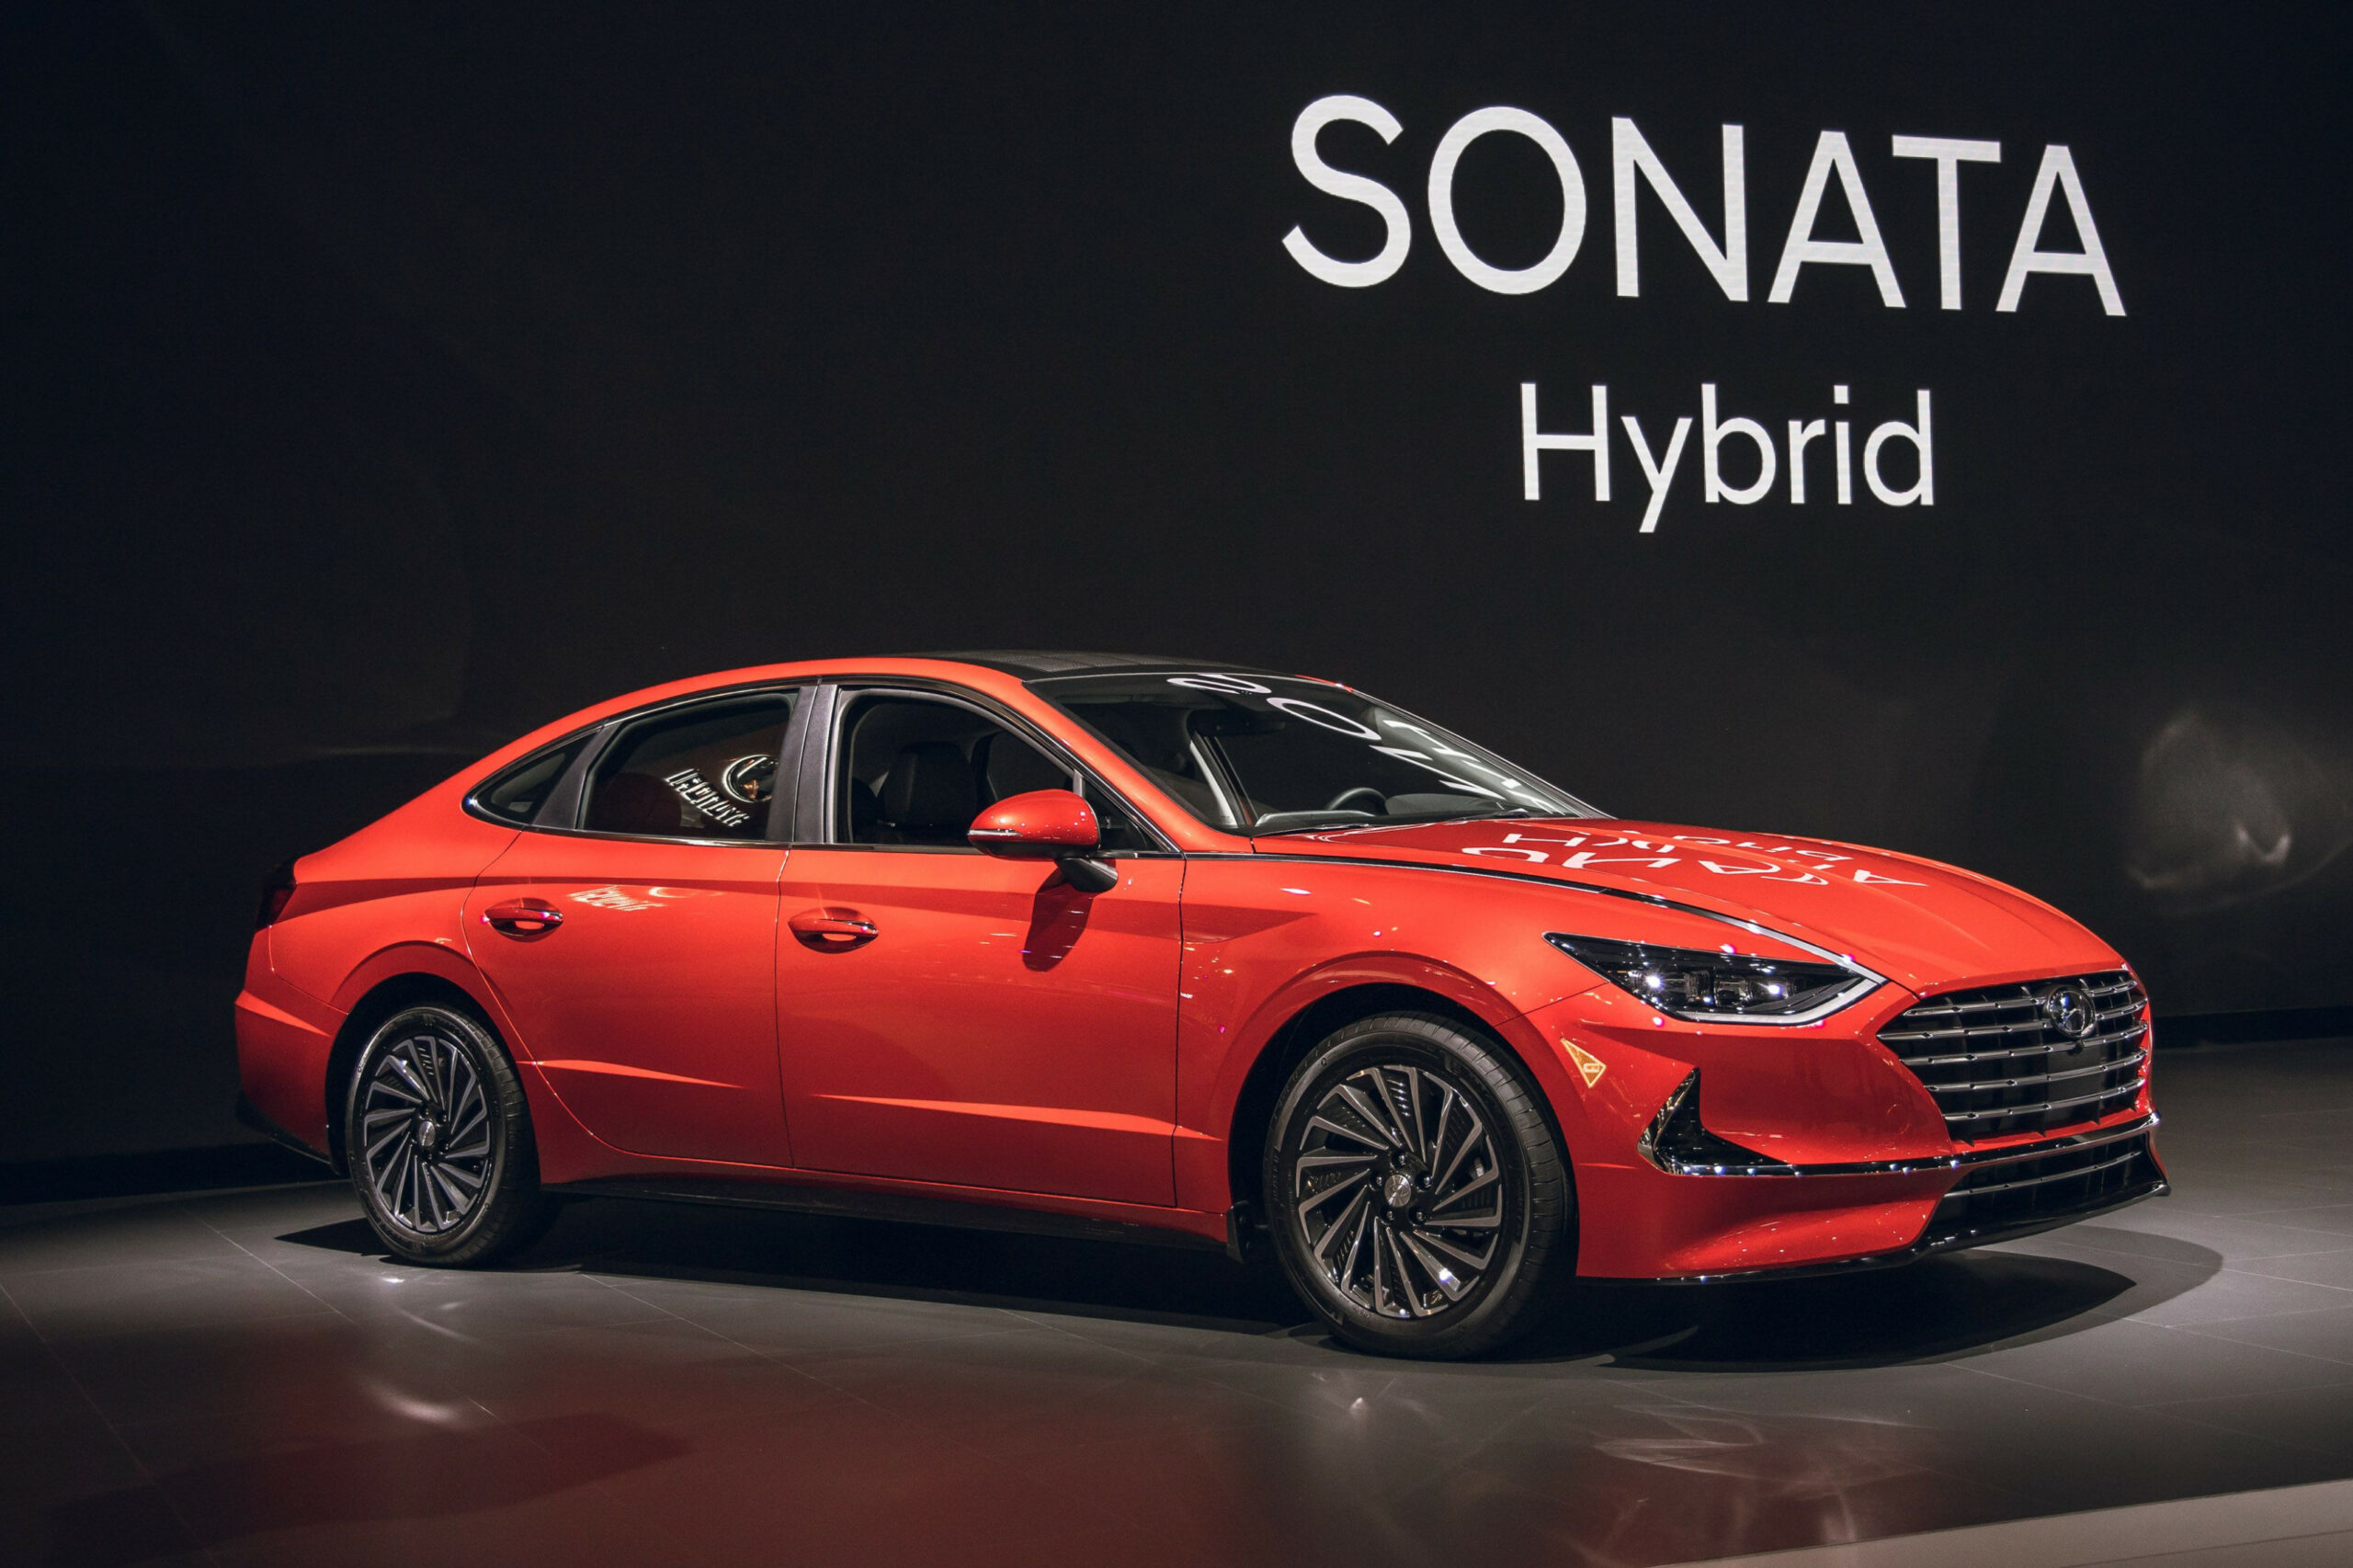 New 8 Hyundai Sonata Hybrid Has a Solar Roof, Up to 8 MPG